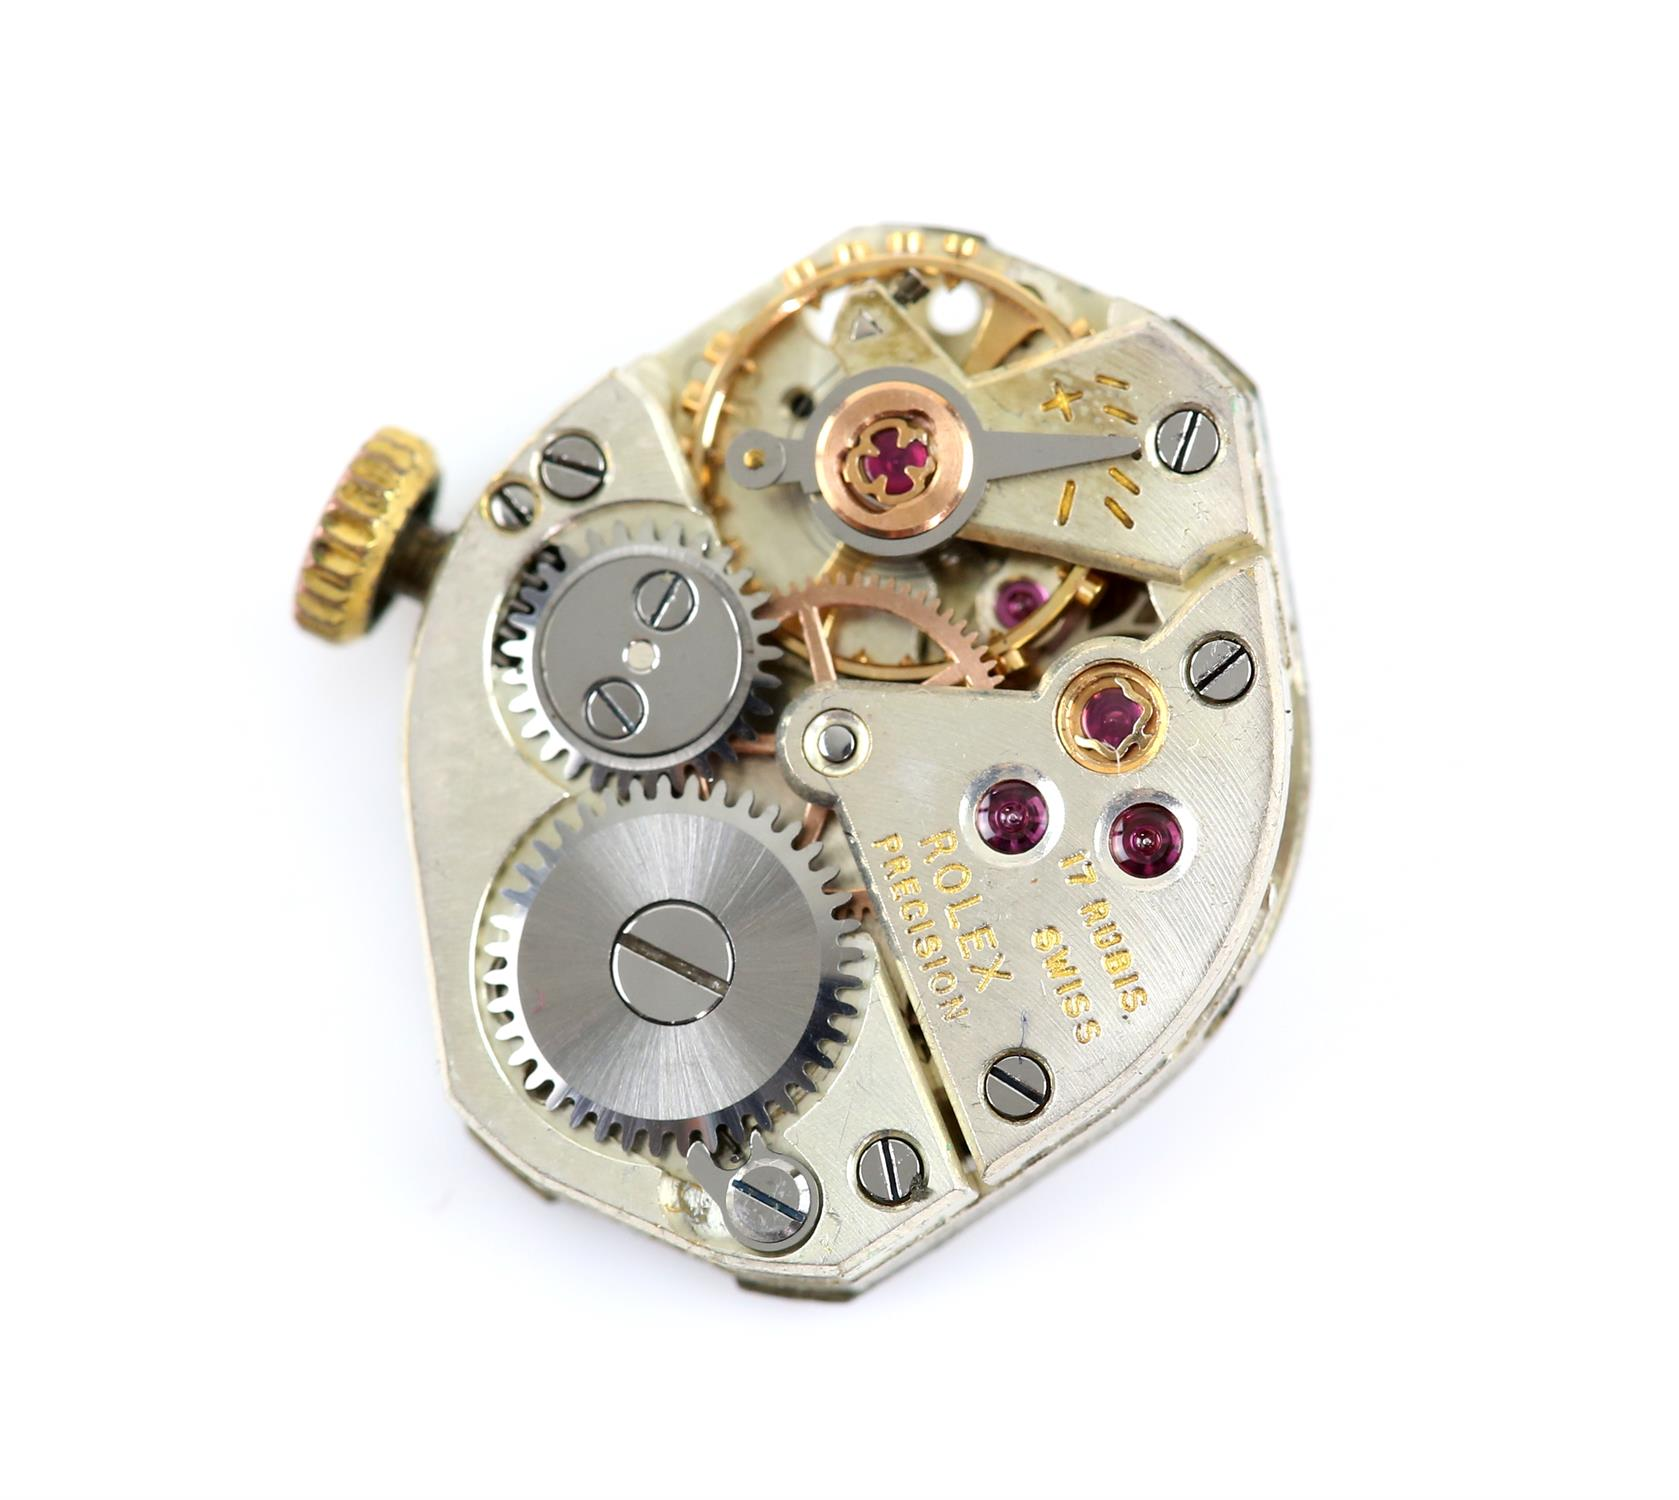 Rolex, a ladies reference 9285 Precision wristwatch in gold case, signed dial with gold dagger - Image 3 of 3